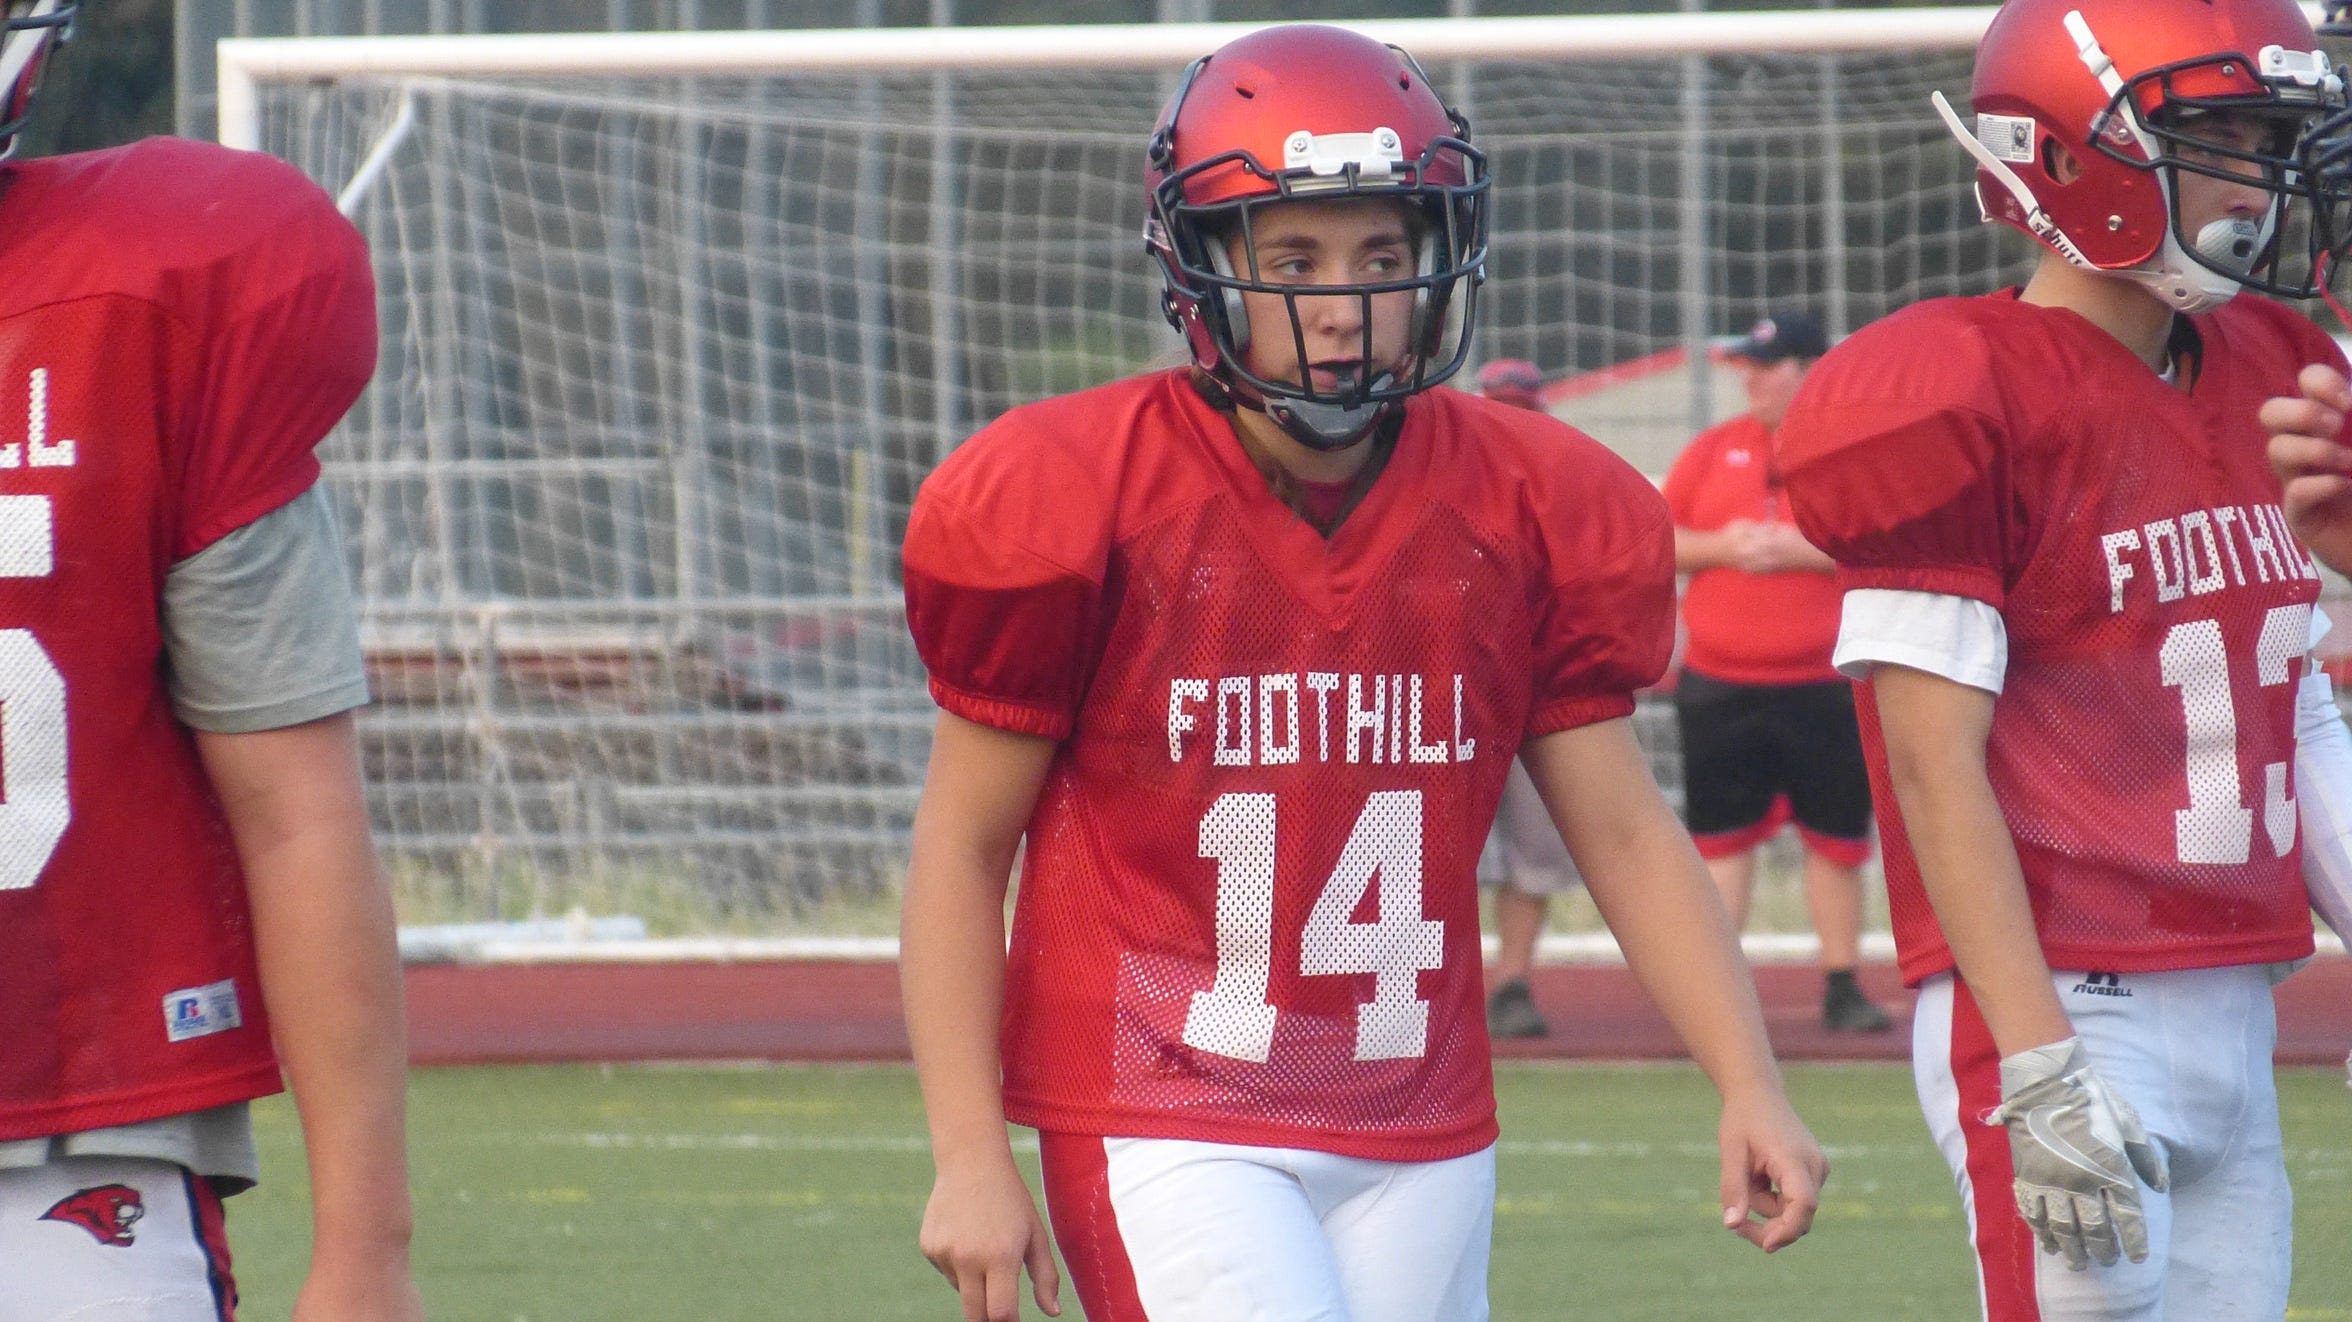 Lilia Hoheisel lines up at linebacker for Foothill. Football teams for Foothill, Shasta and Enterprise High gathered at Foothill on Friday for a three-way scrimmage. The field was split at the 50-yard line, and teams alternated offensive and defensive series.